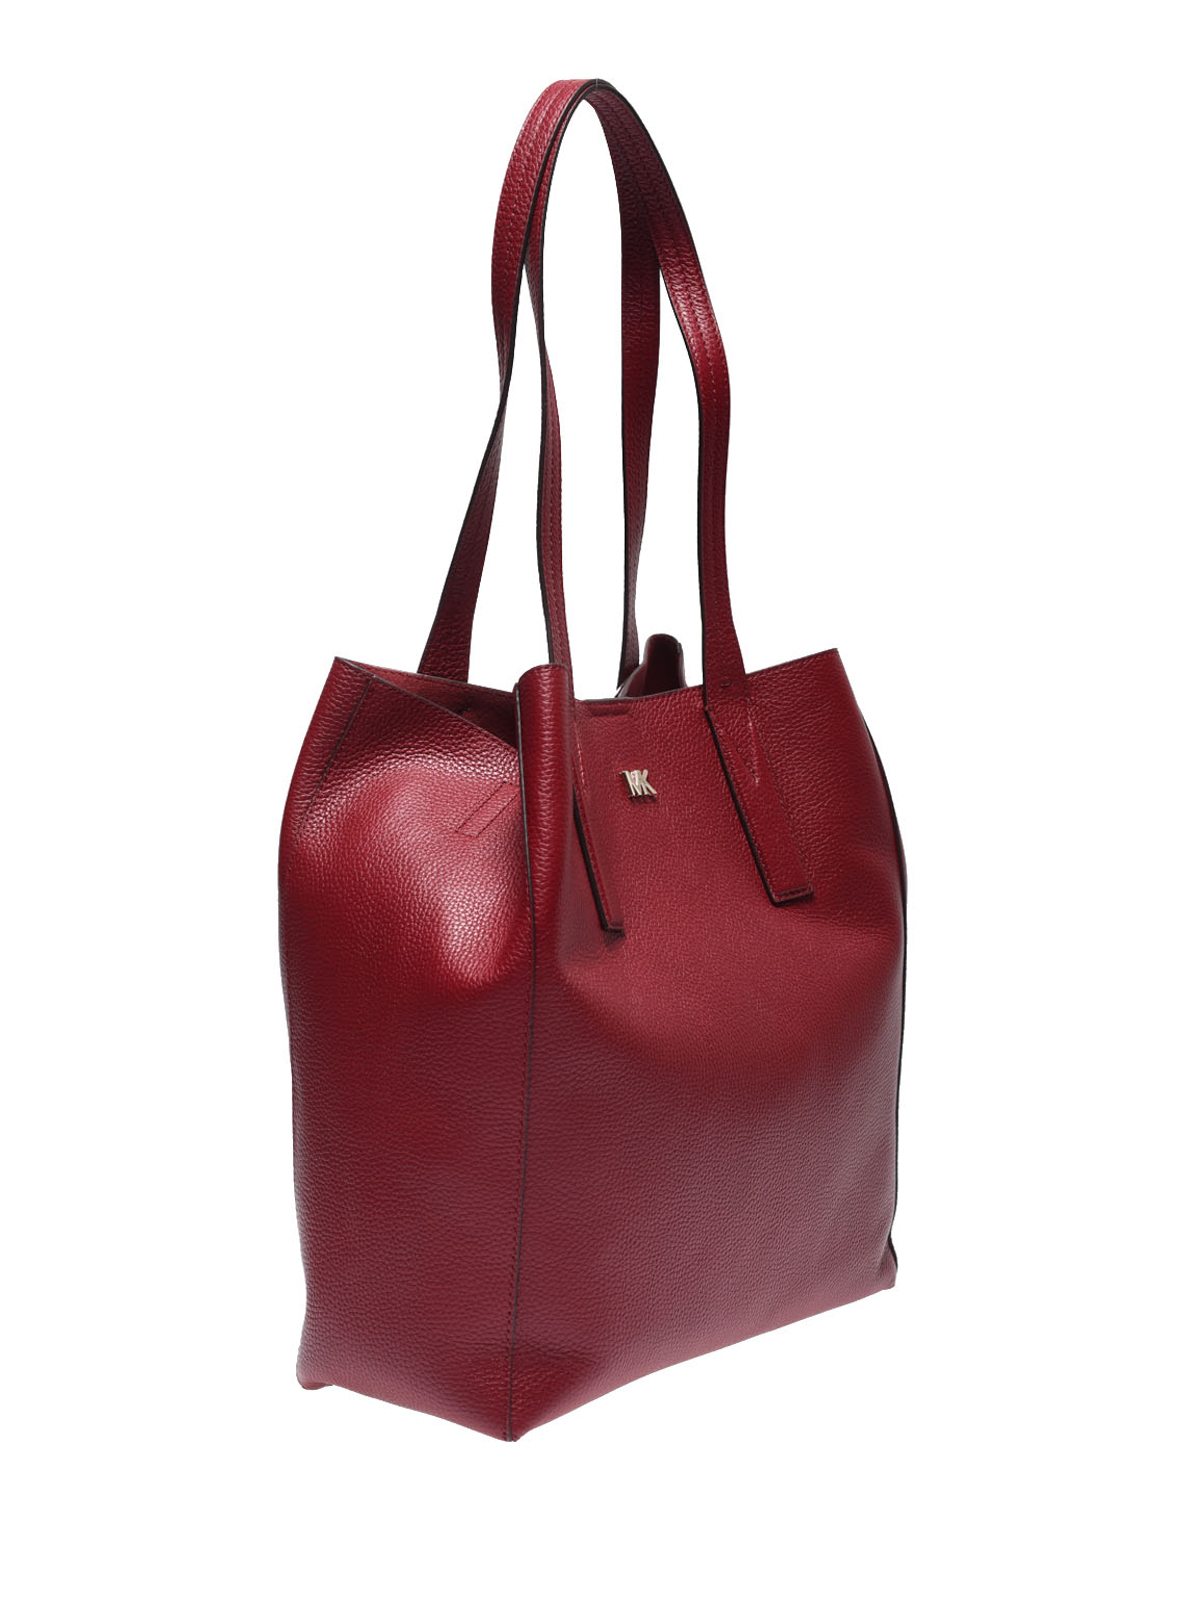 5284e8e095dace MICHAEL KORS: totes bags online - Junie maroon leather large tote